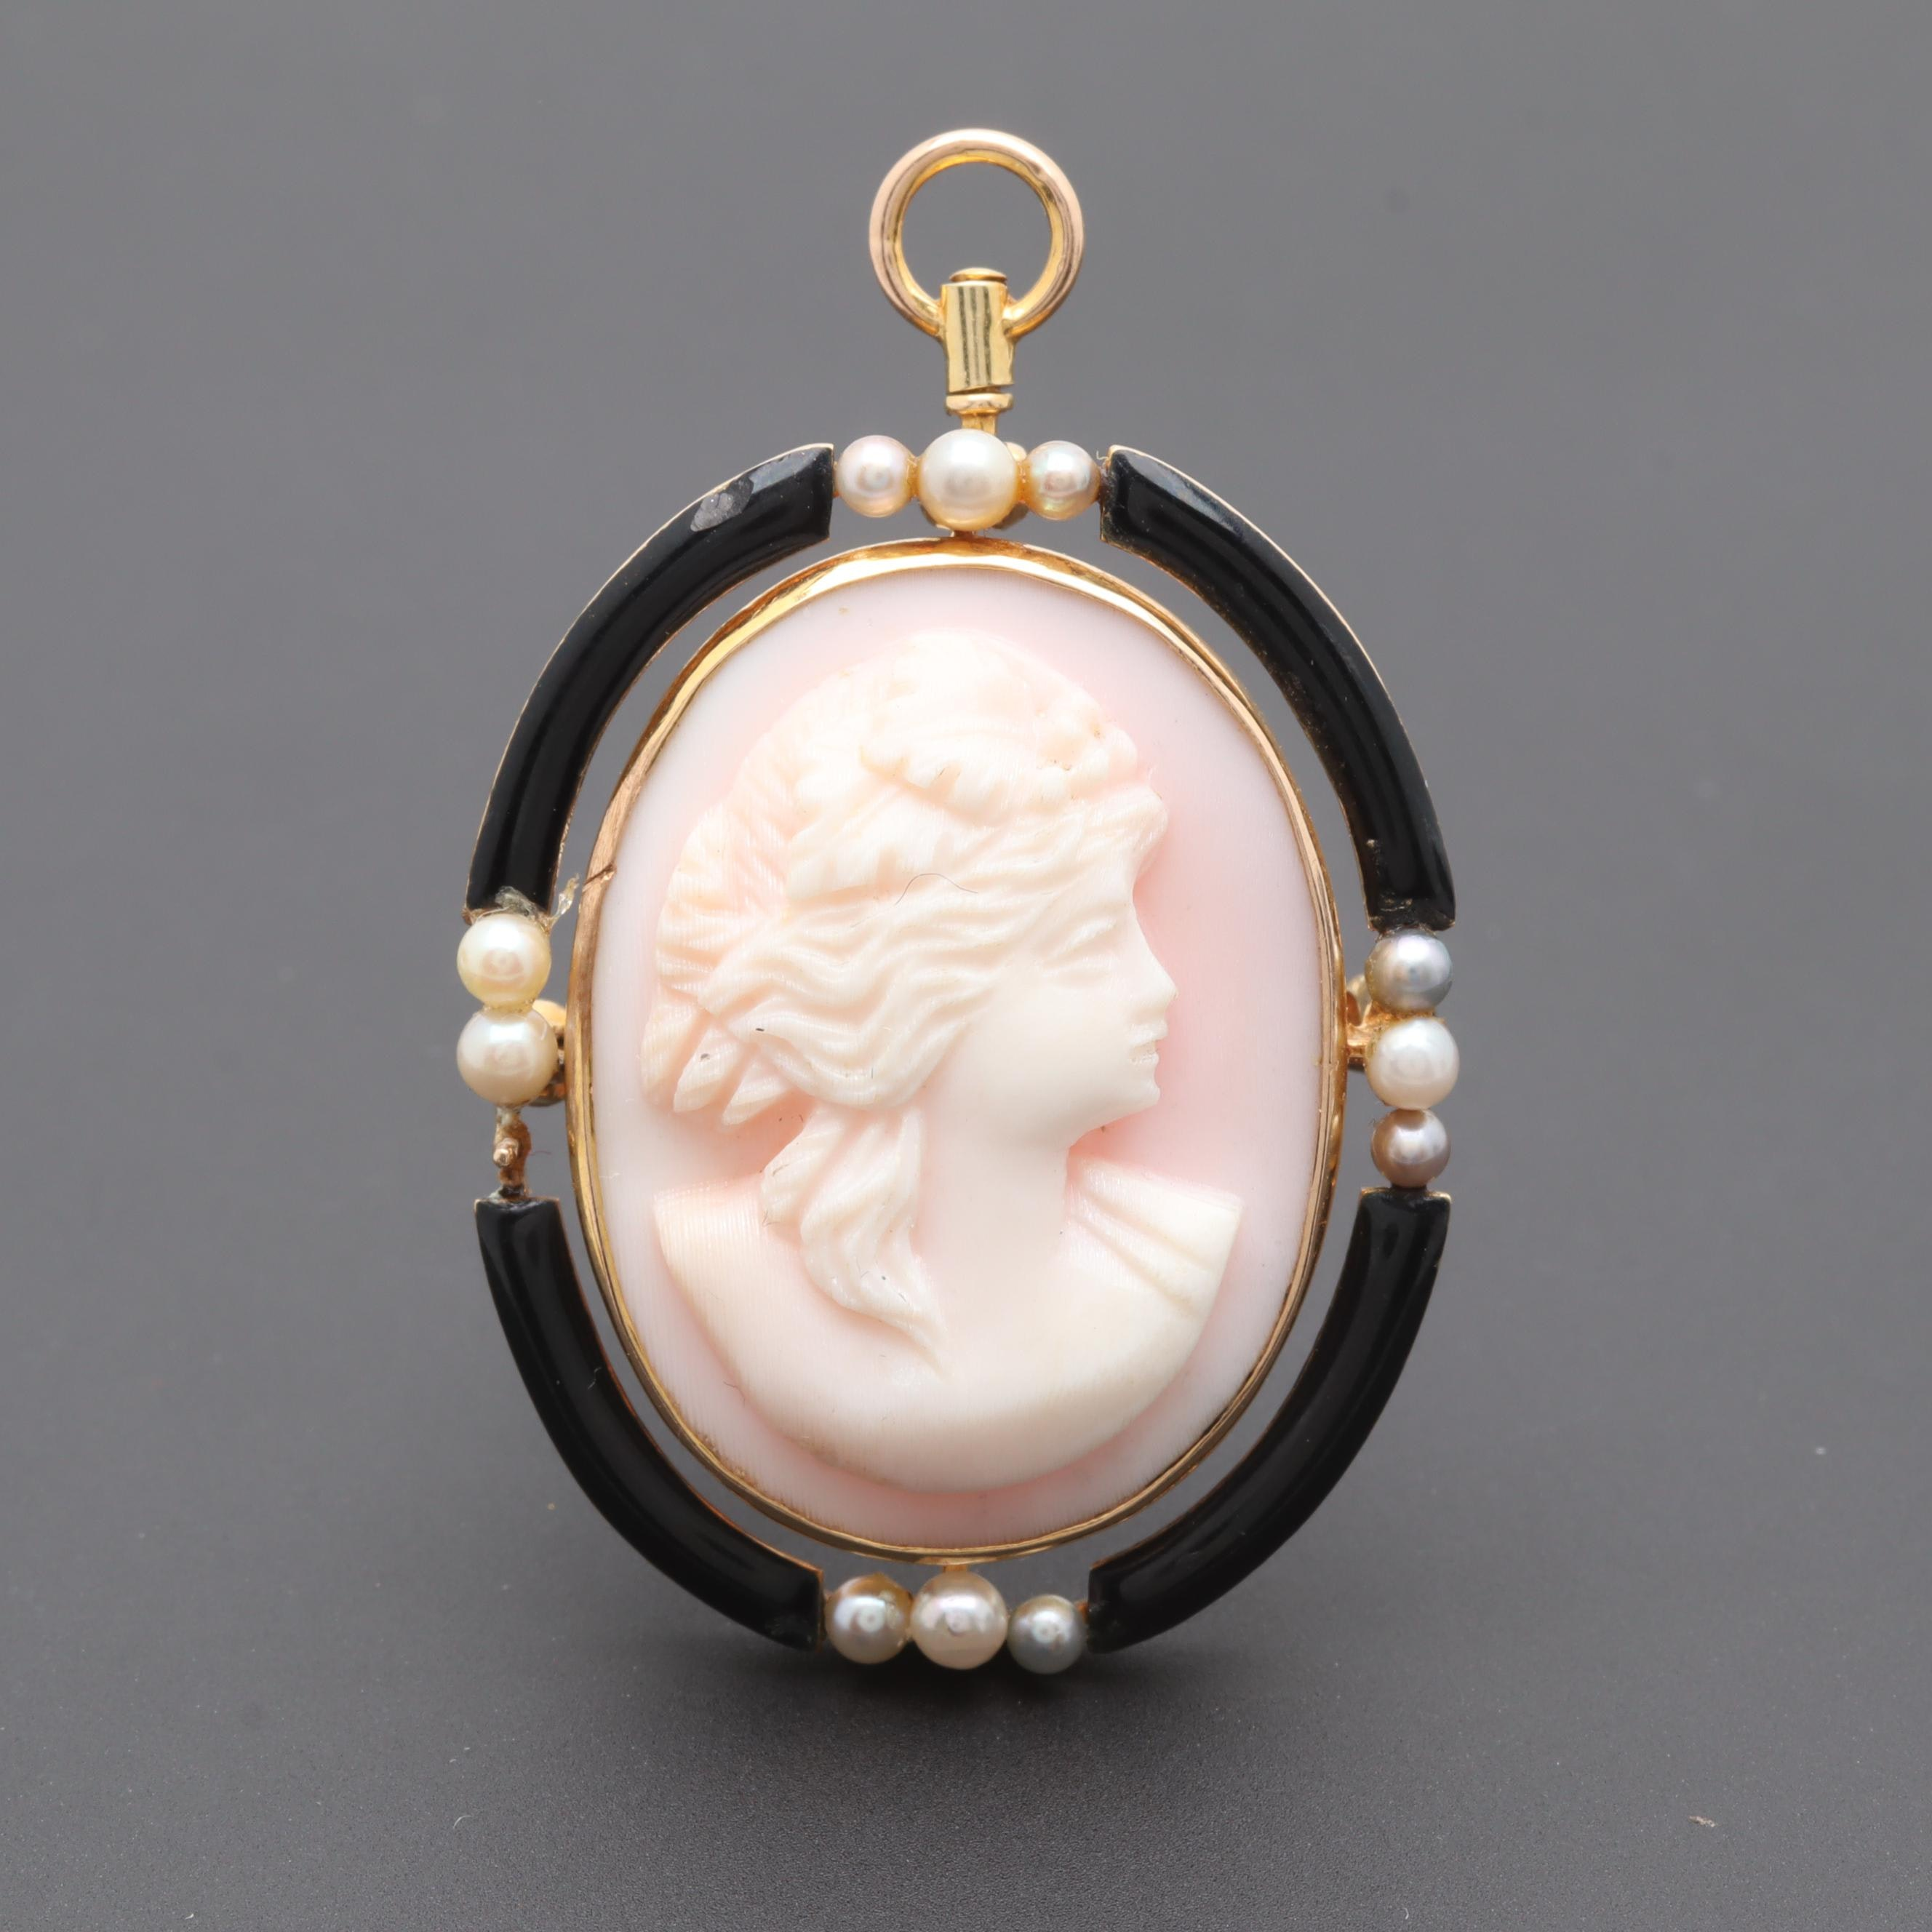 Antique 1900's 14K Gold Conch Shell Cameo and Cultured Pearl Converter Brooch